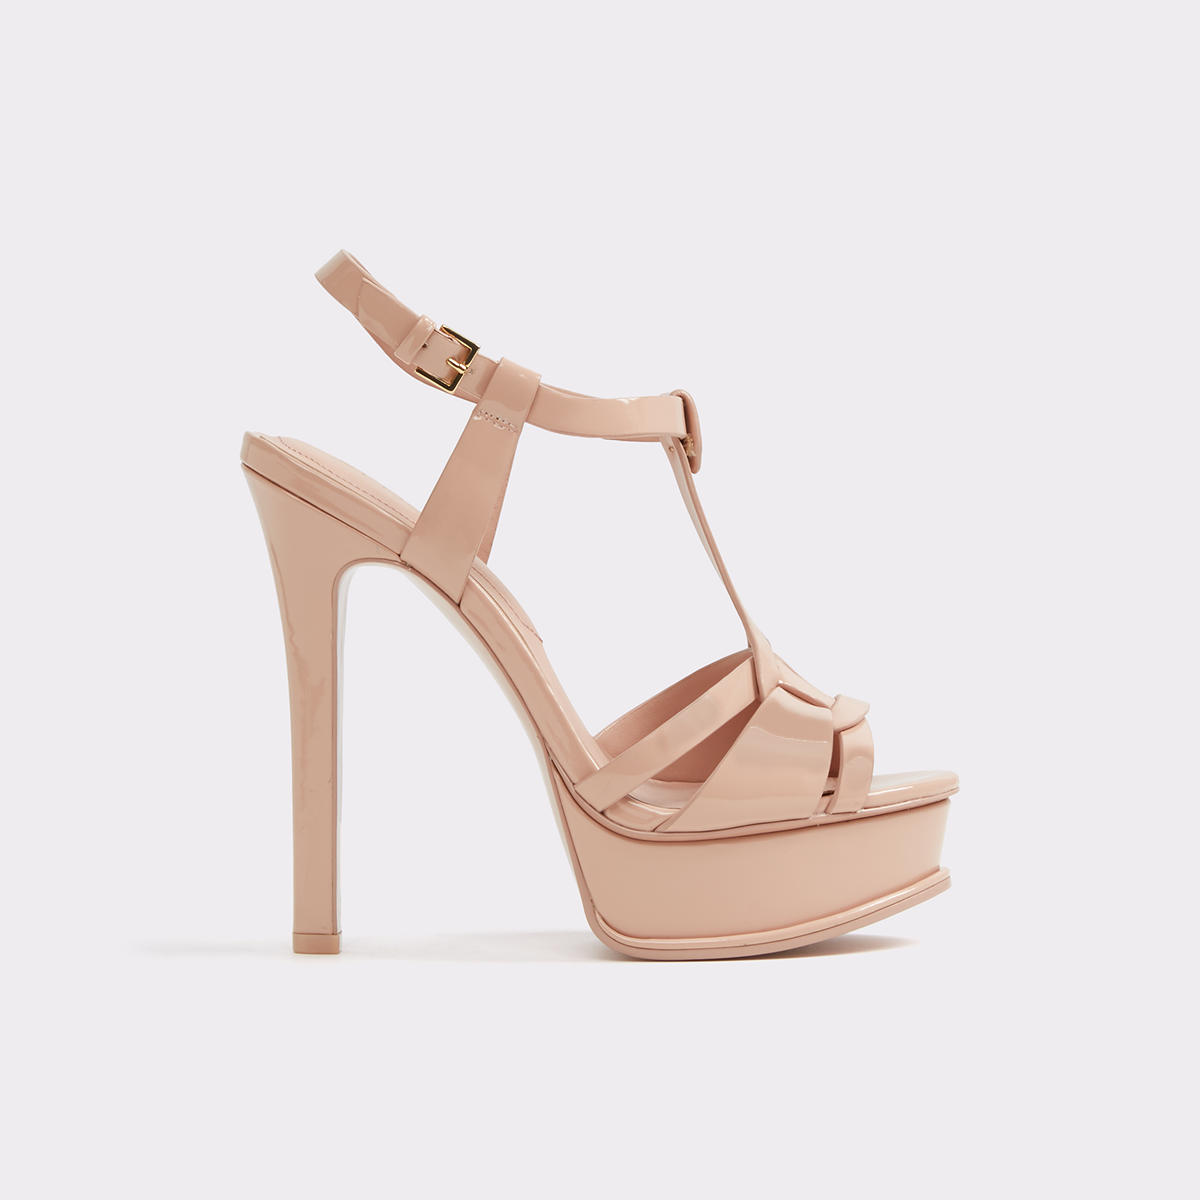 5db0b8e6c04 Chelly Light Pink Women s Platform sandals